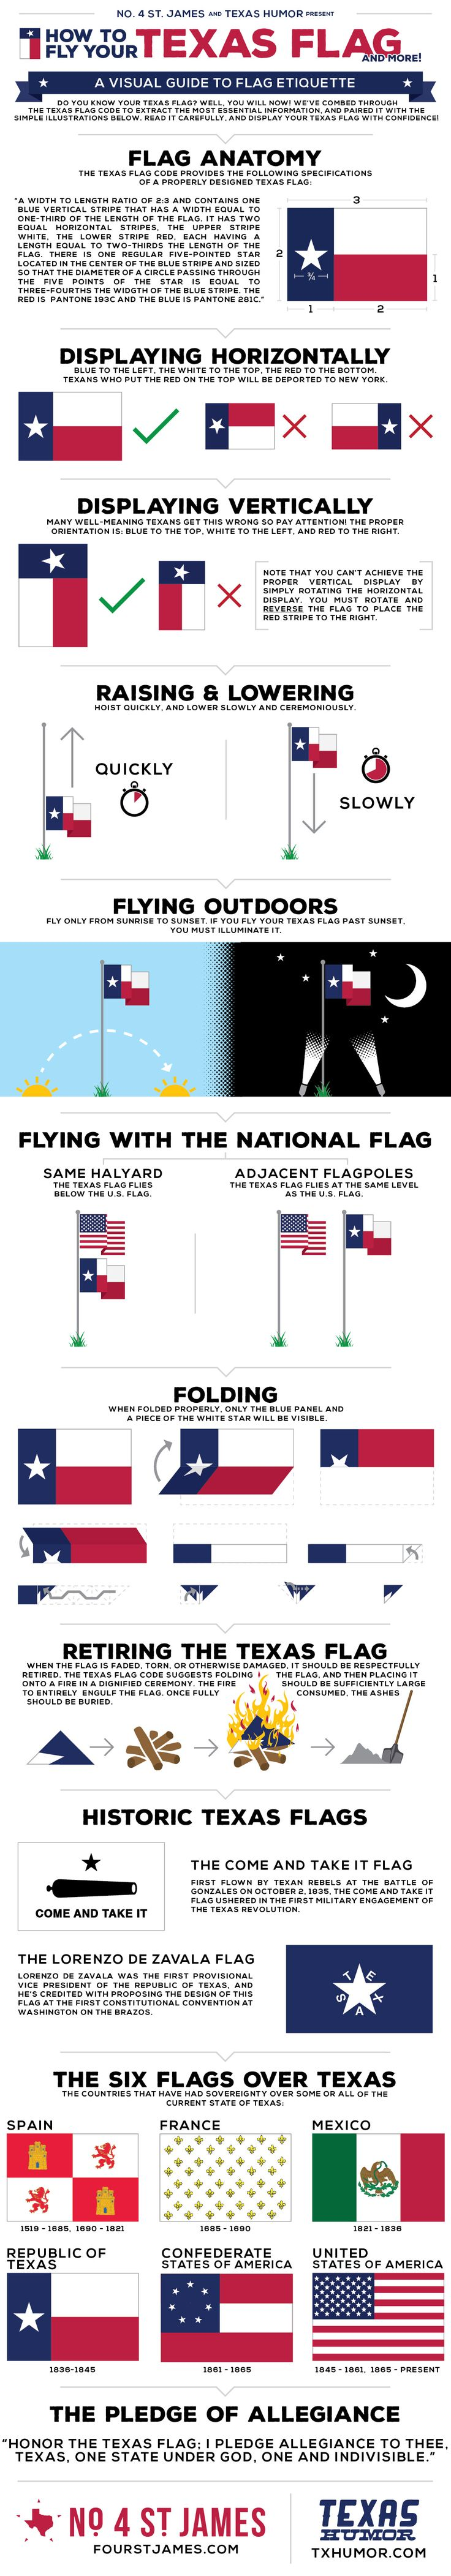 How to Fly Your Texas Flag: A Visual Guide to Flag Etiquette, brought to you by No. 4 St. James and Texas Humor.